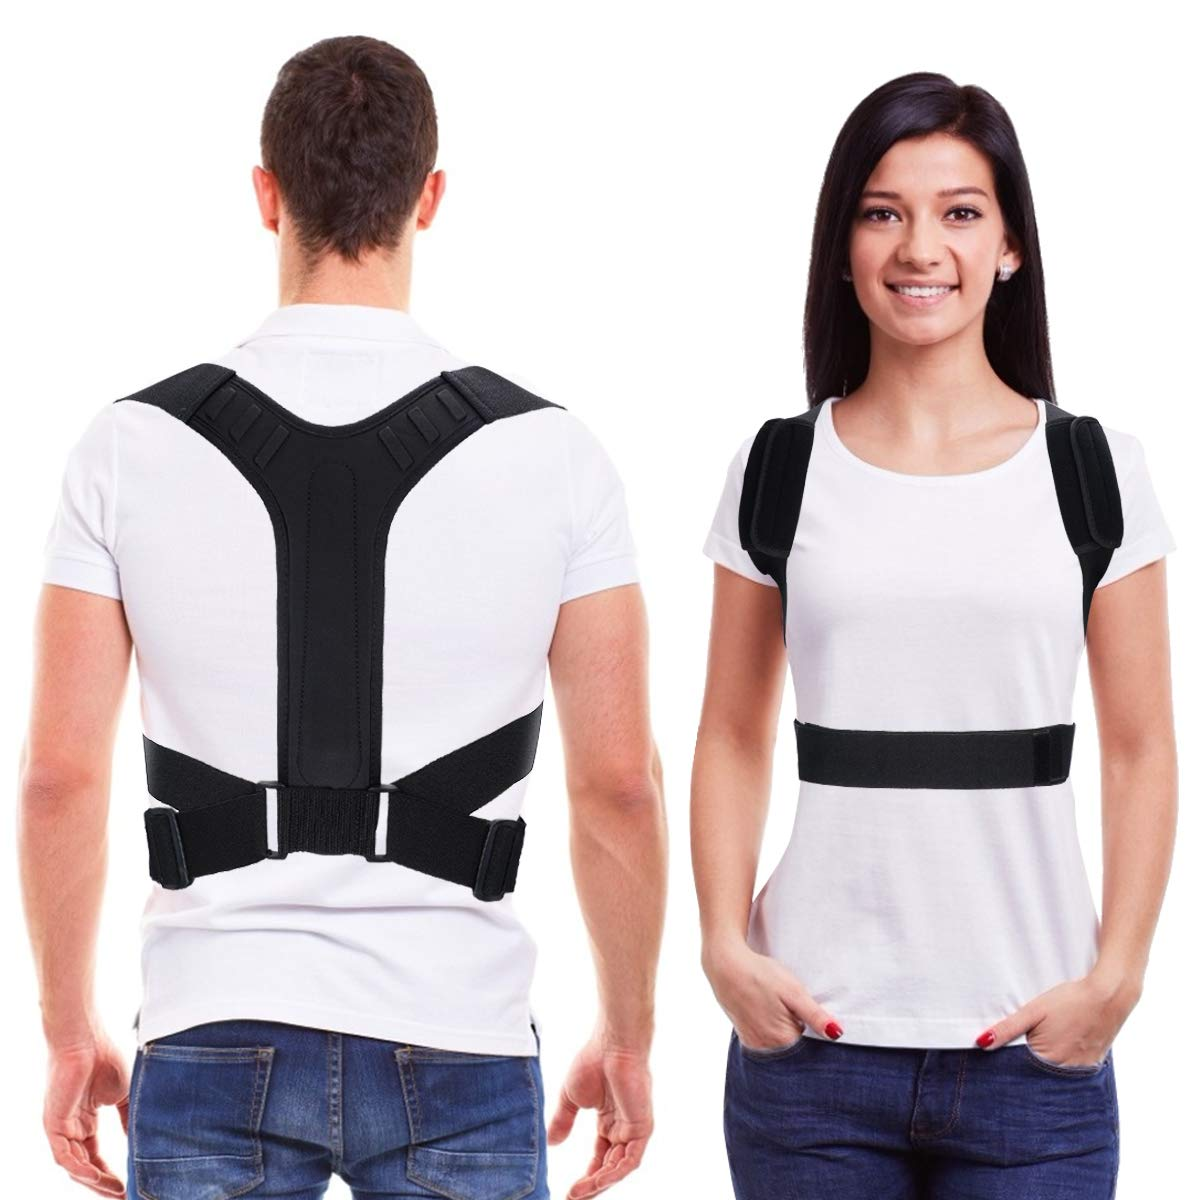 Back Brace Posture Corrector for Men and Women -Xdtlty Adjustable Upper Back and Legs Brace